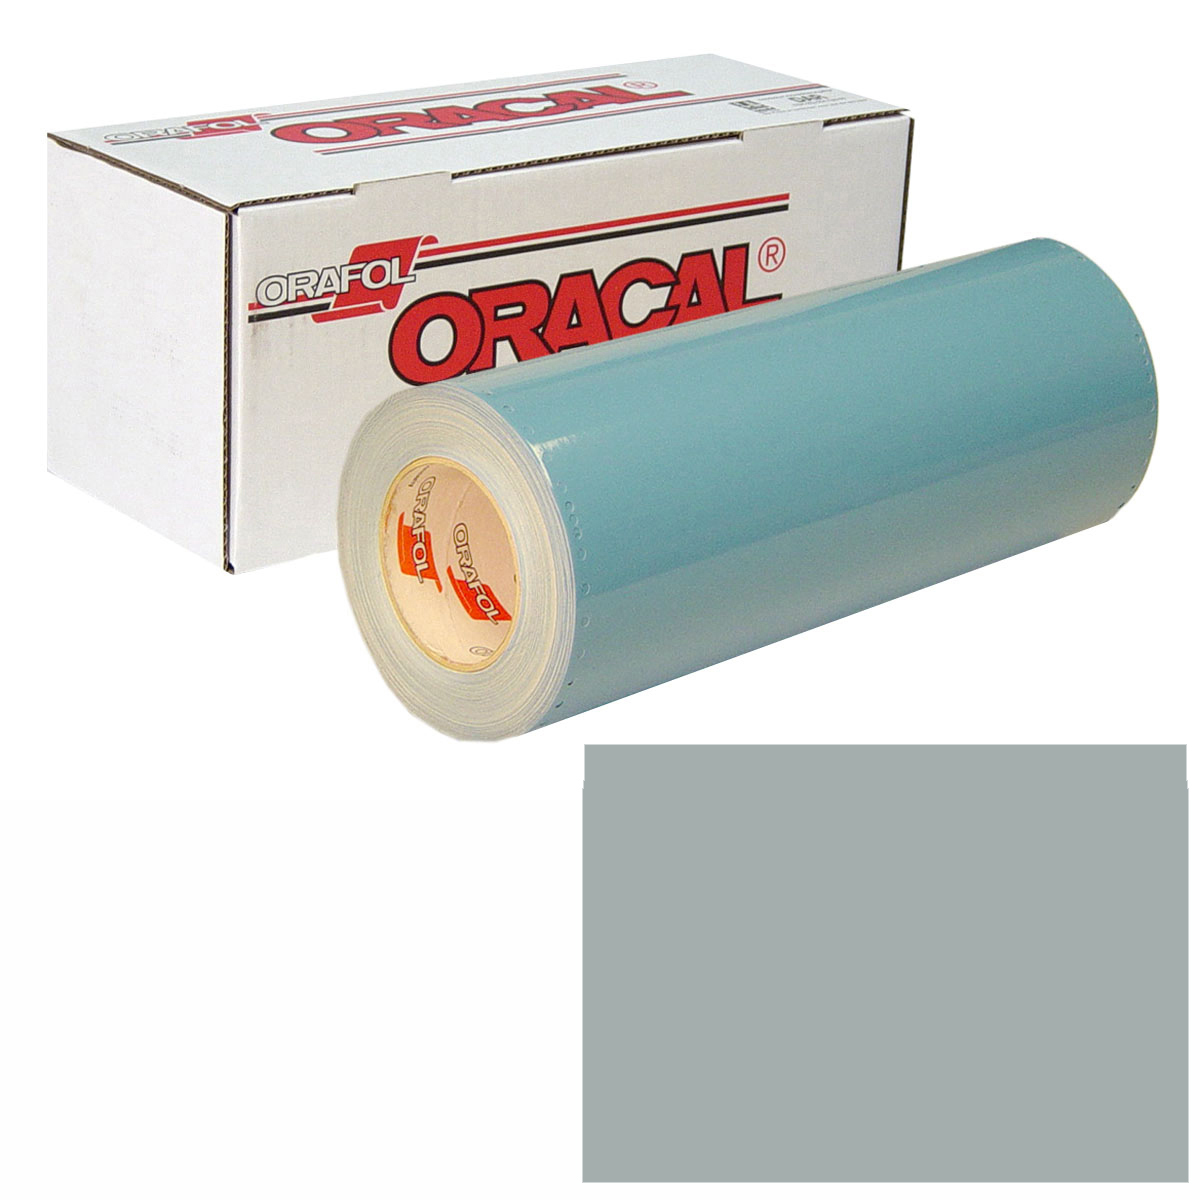 ORACAL 751 Unp 48in X 50yd 071 Grey